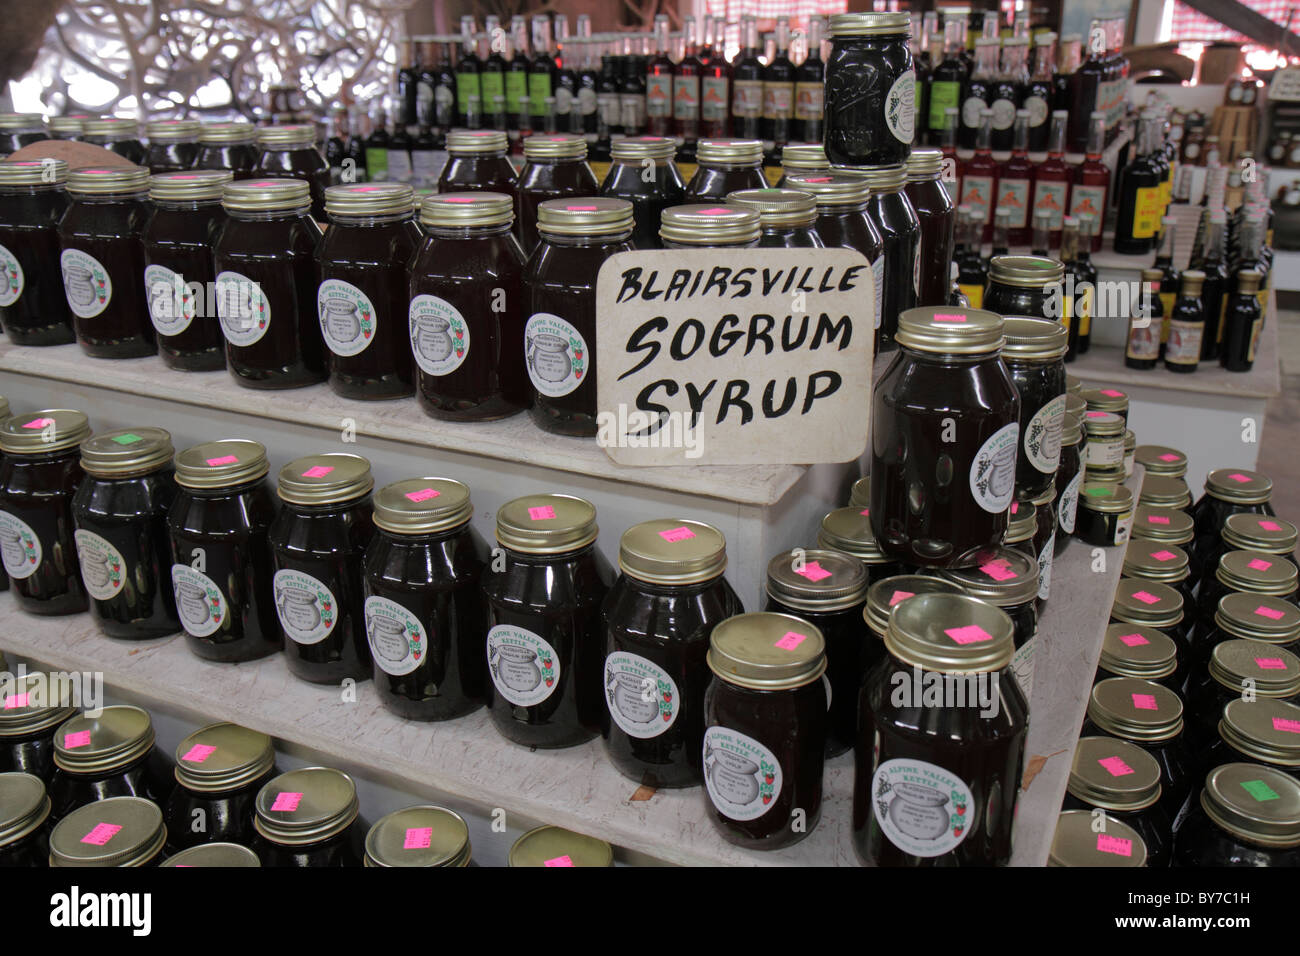 Georgia Robertstown produce stand farmers market local product glass jar display shopping sorghum syrup sweetener - Stock Image